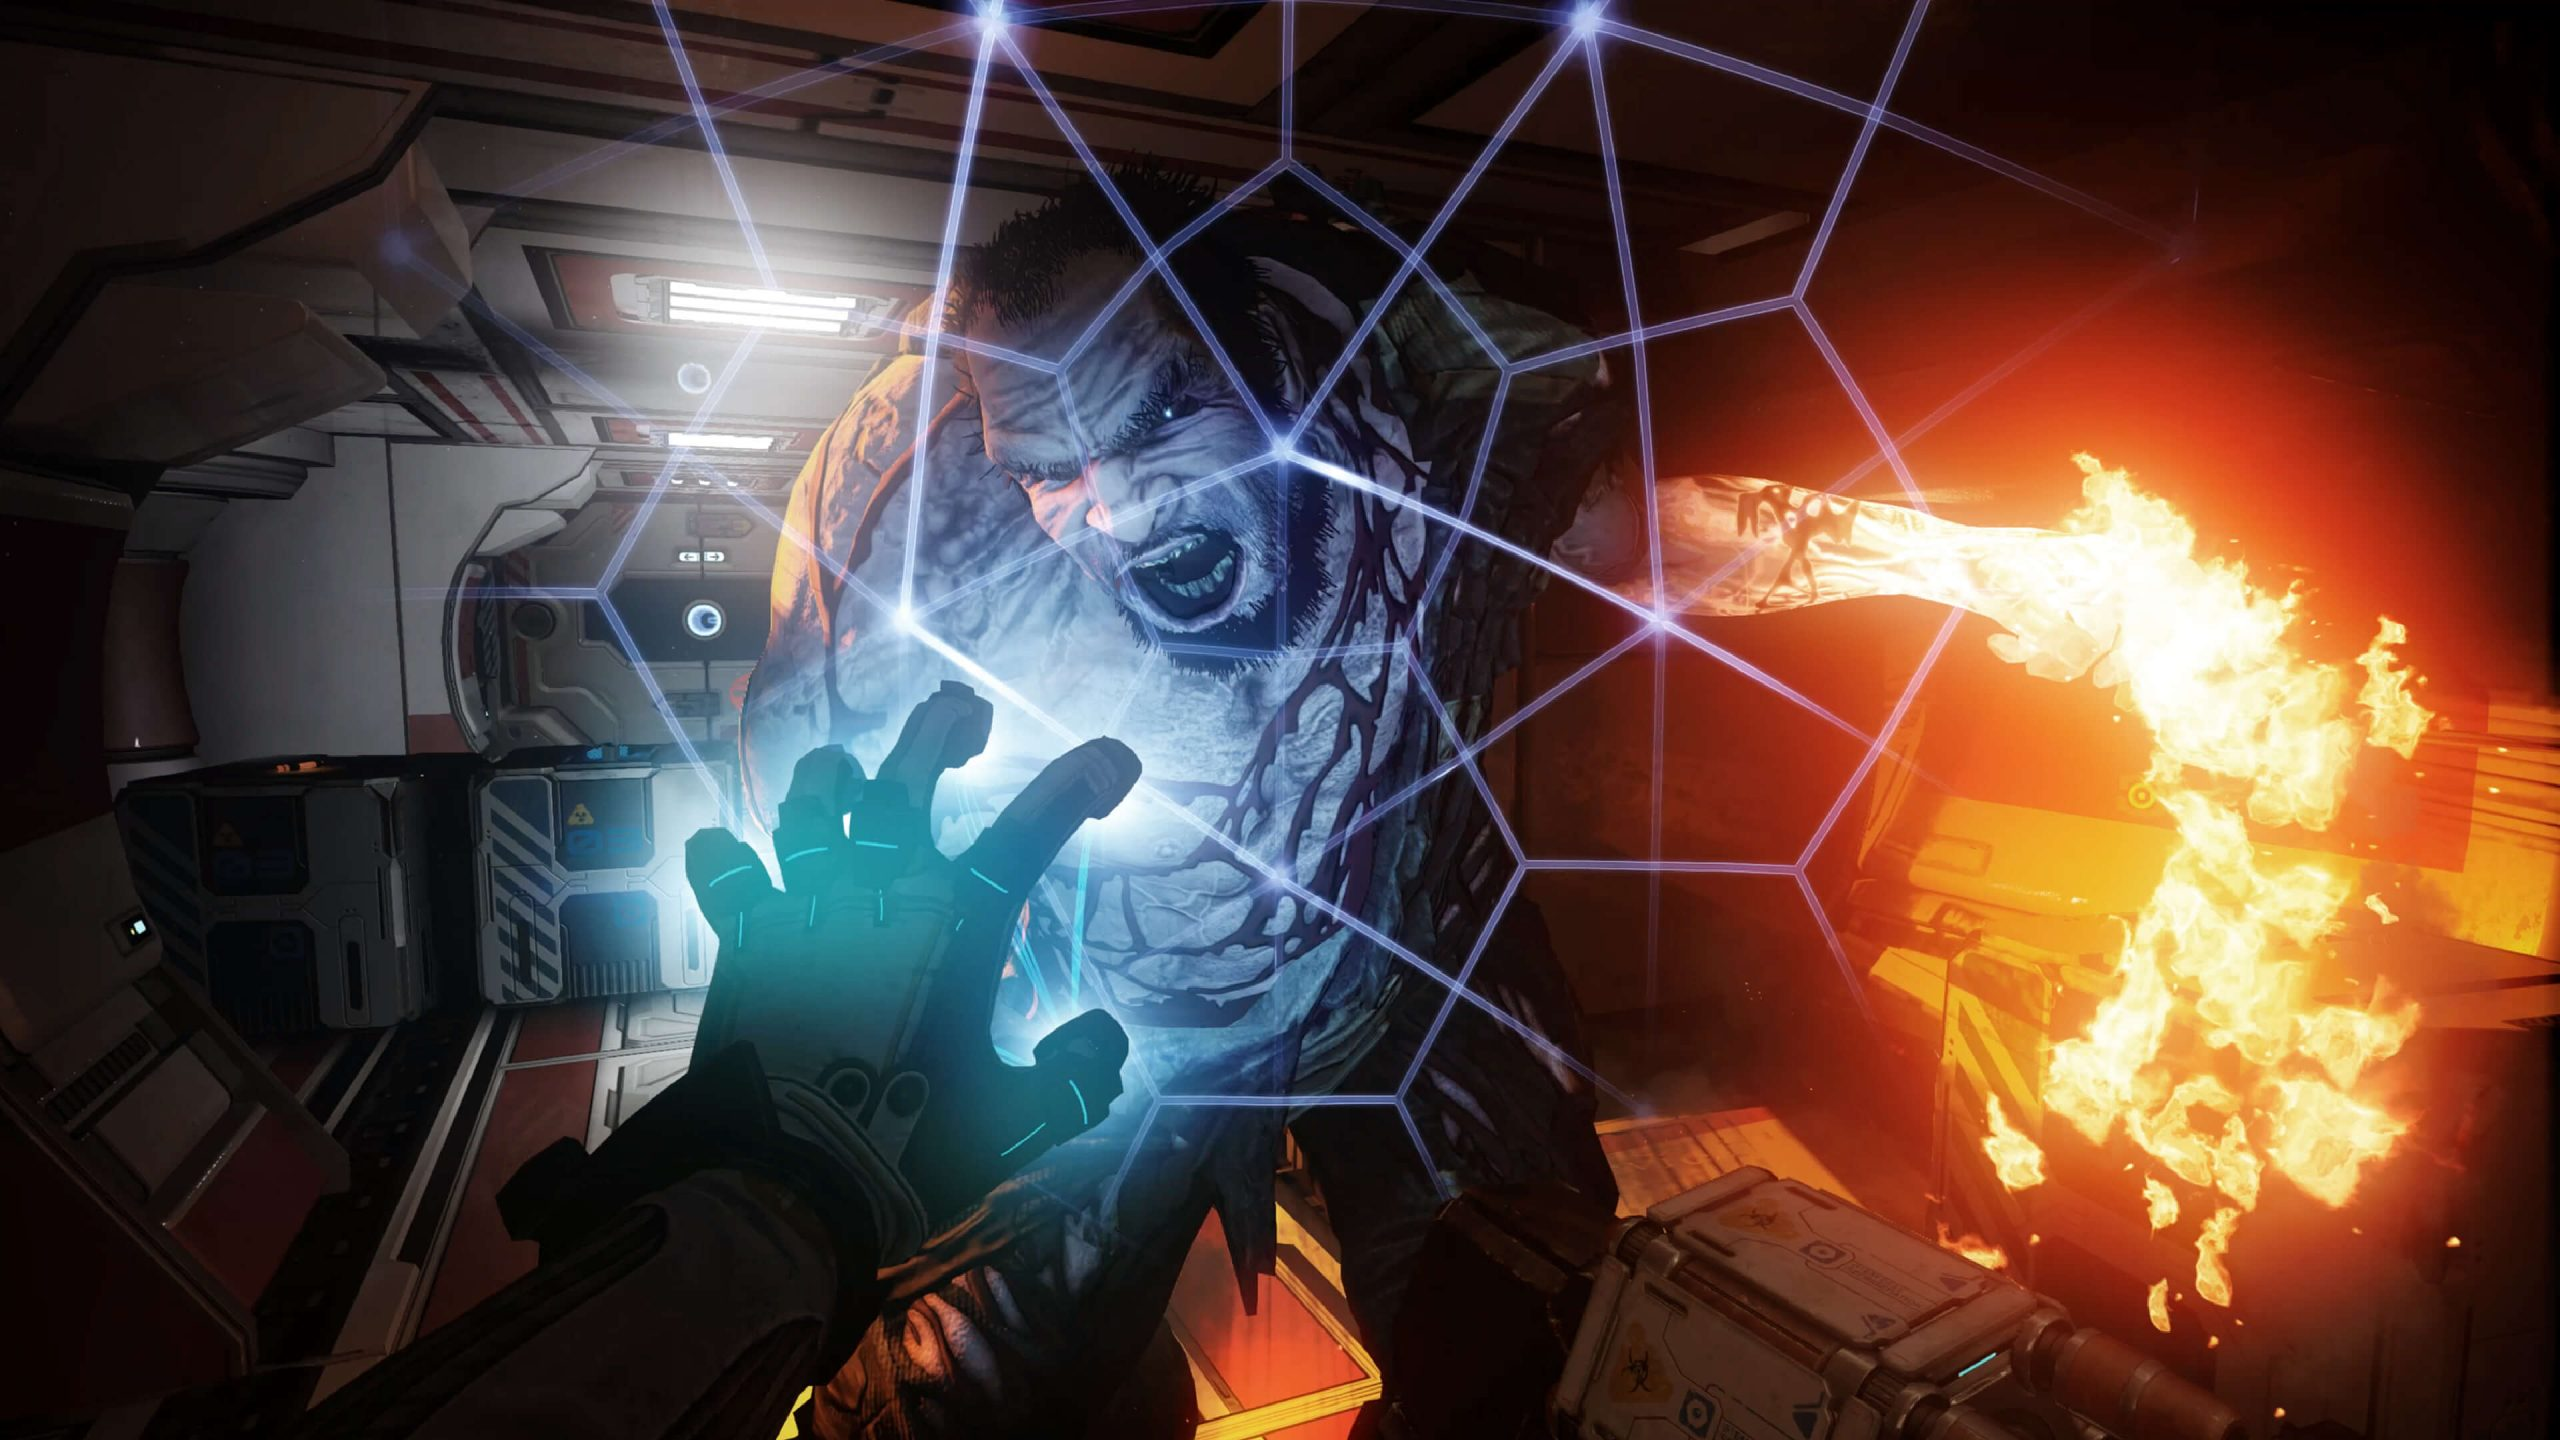 The Persistence release date